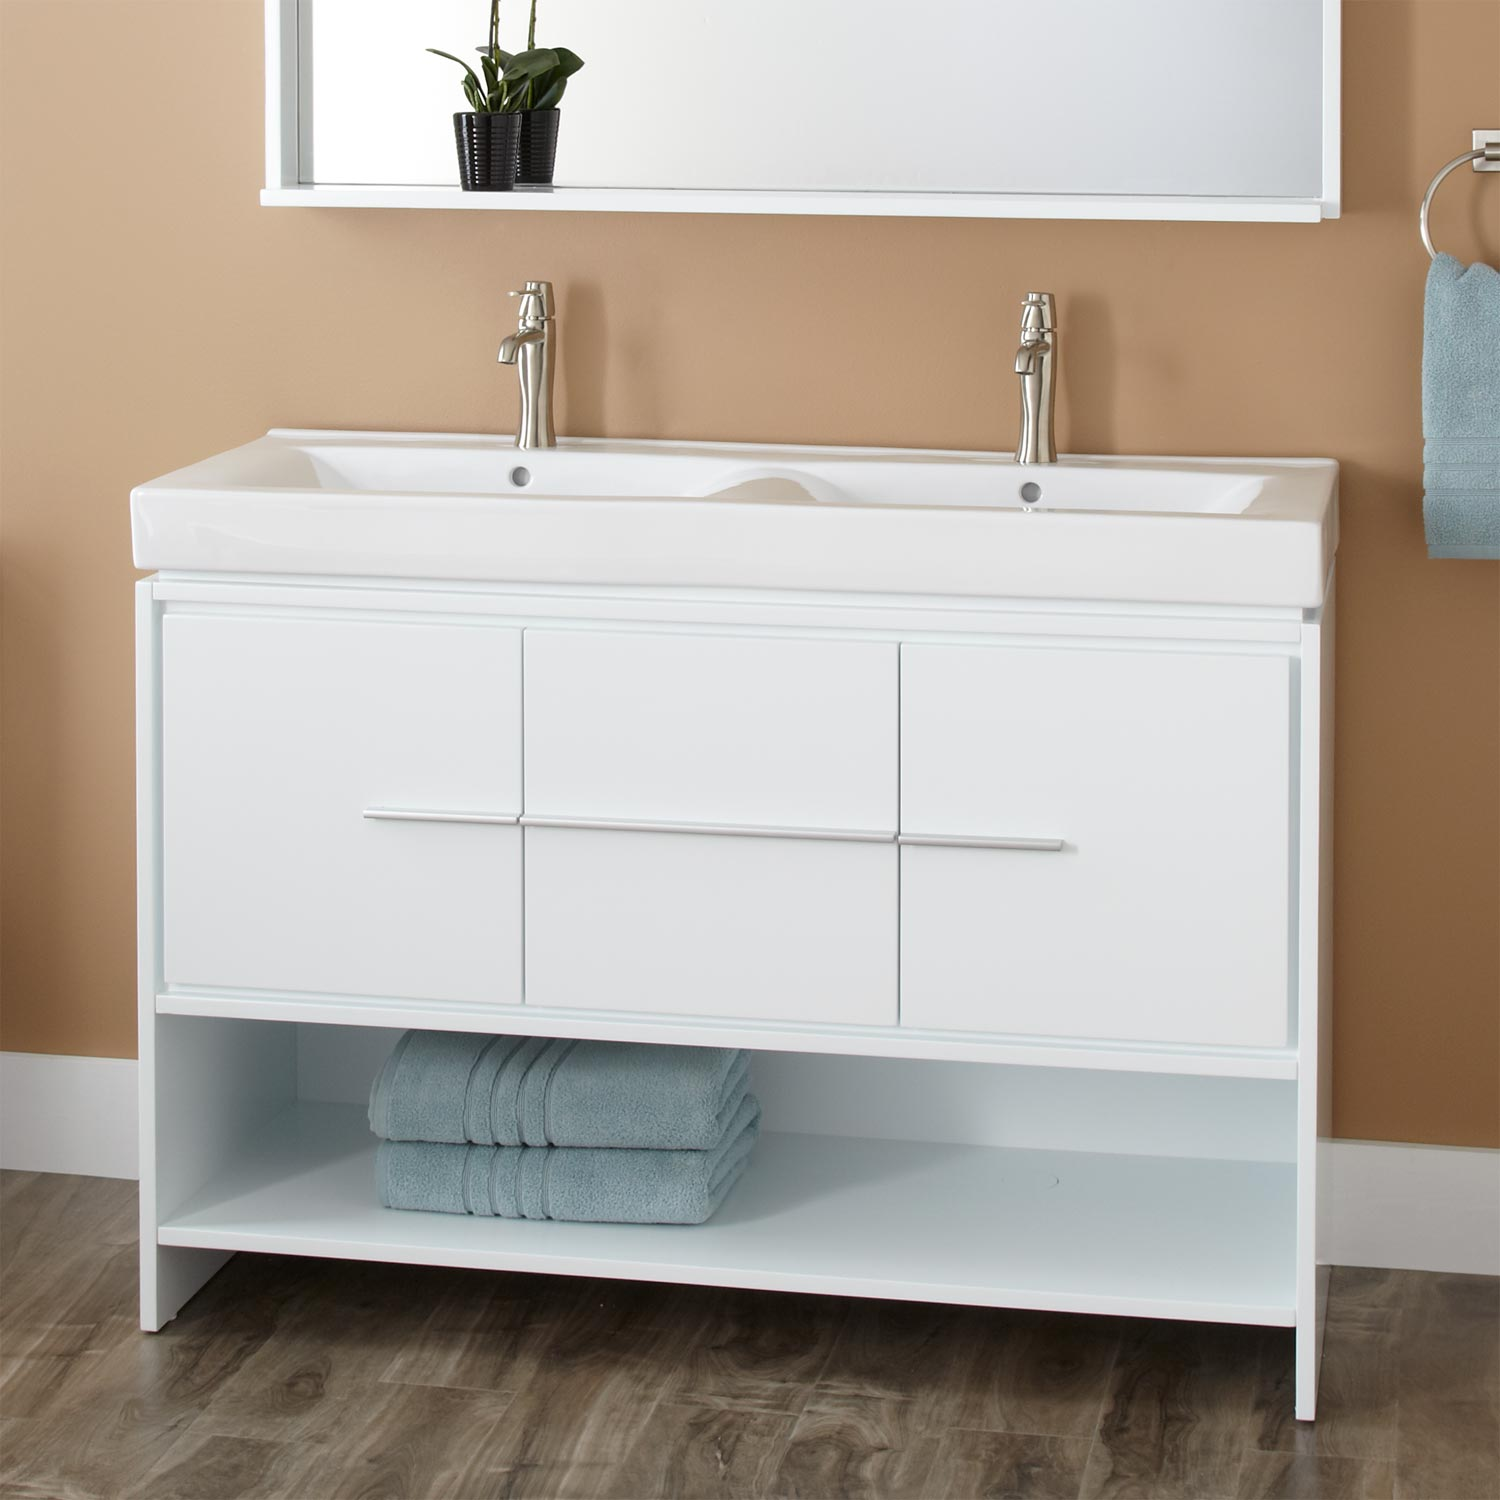 Bathroom sink with cabinet homesfeed for Bathroom washbasin cabinet